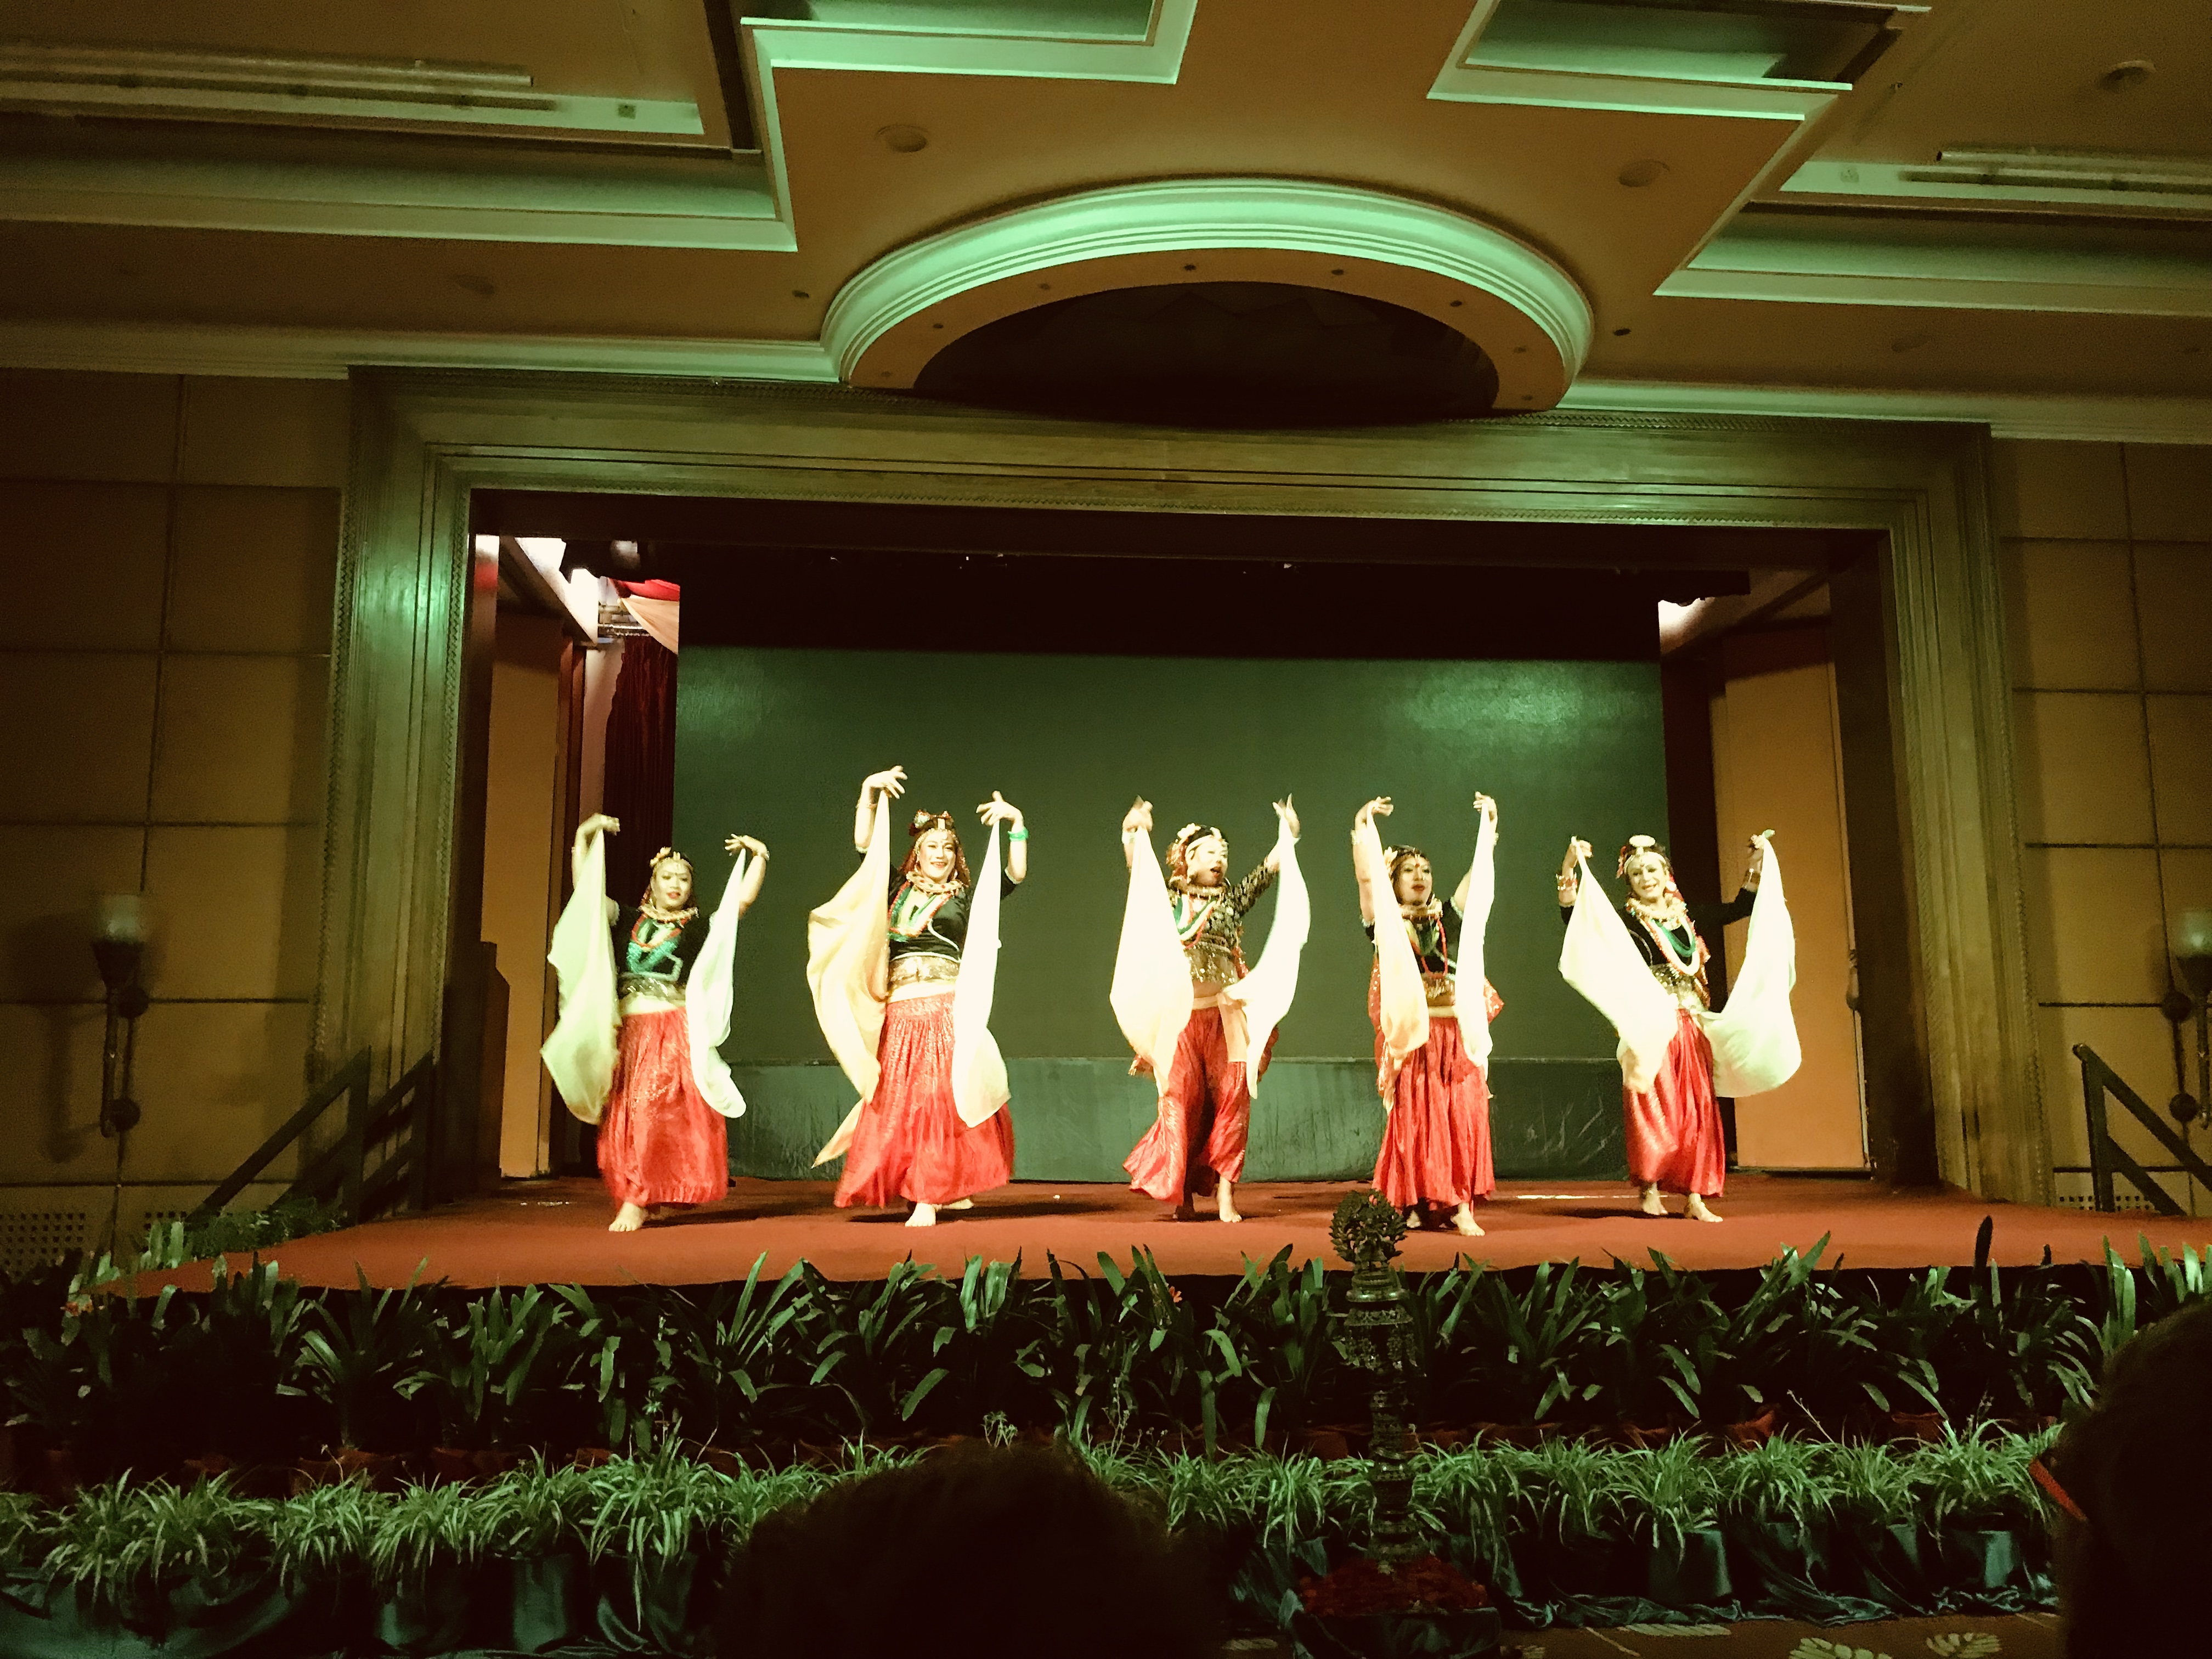 5 maruni dancers on the stage with arms in the air